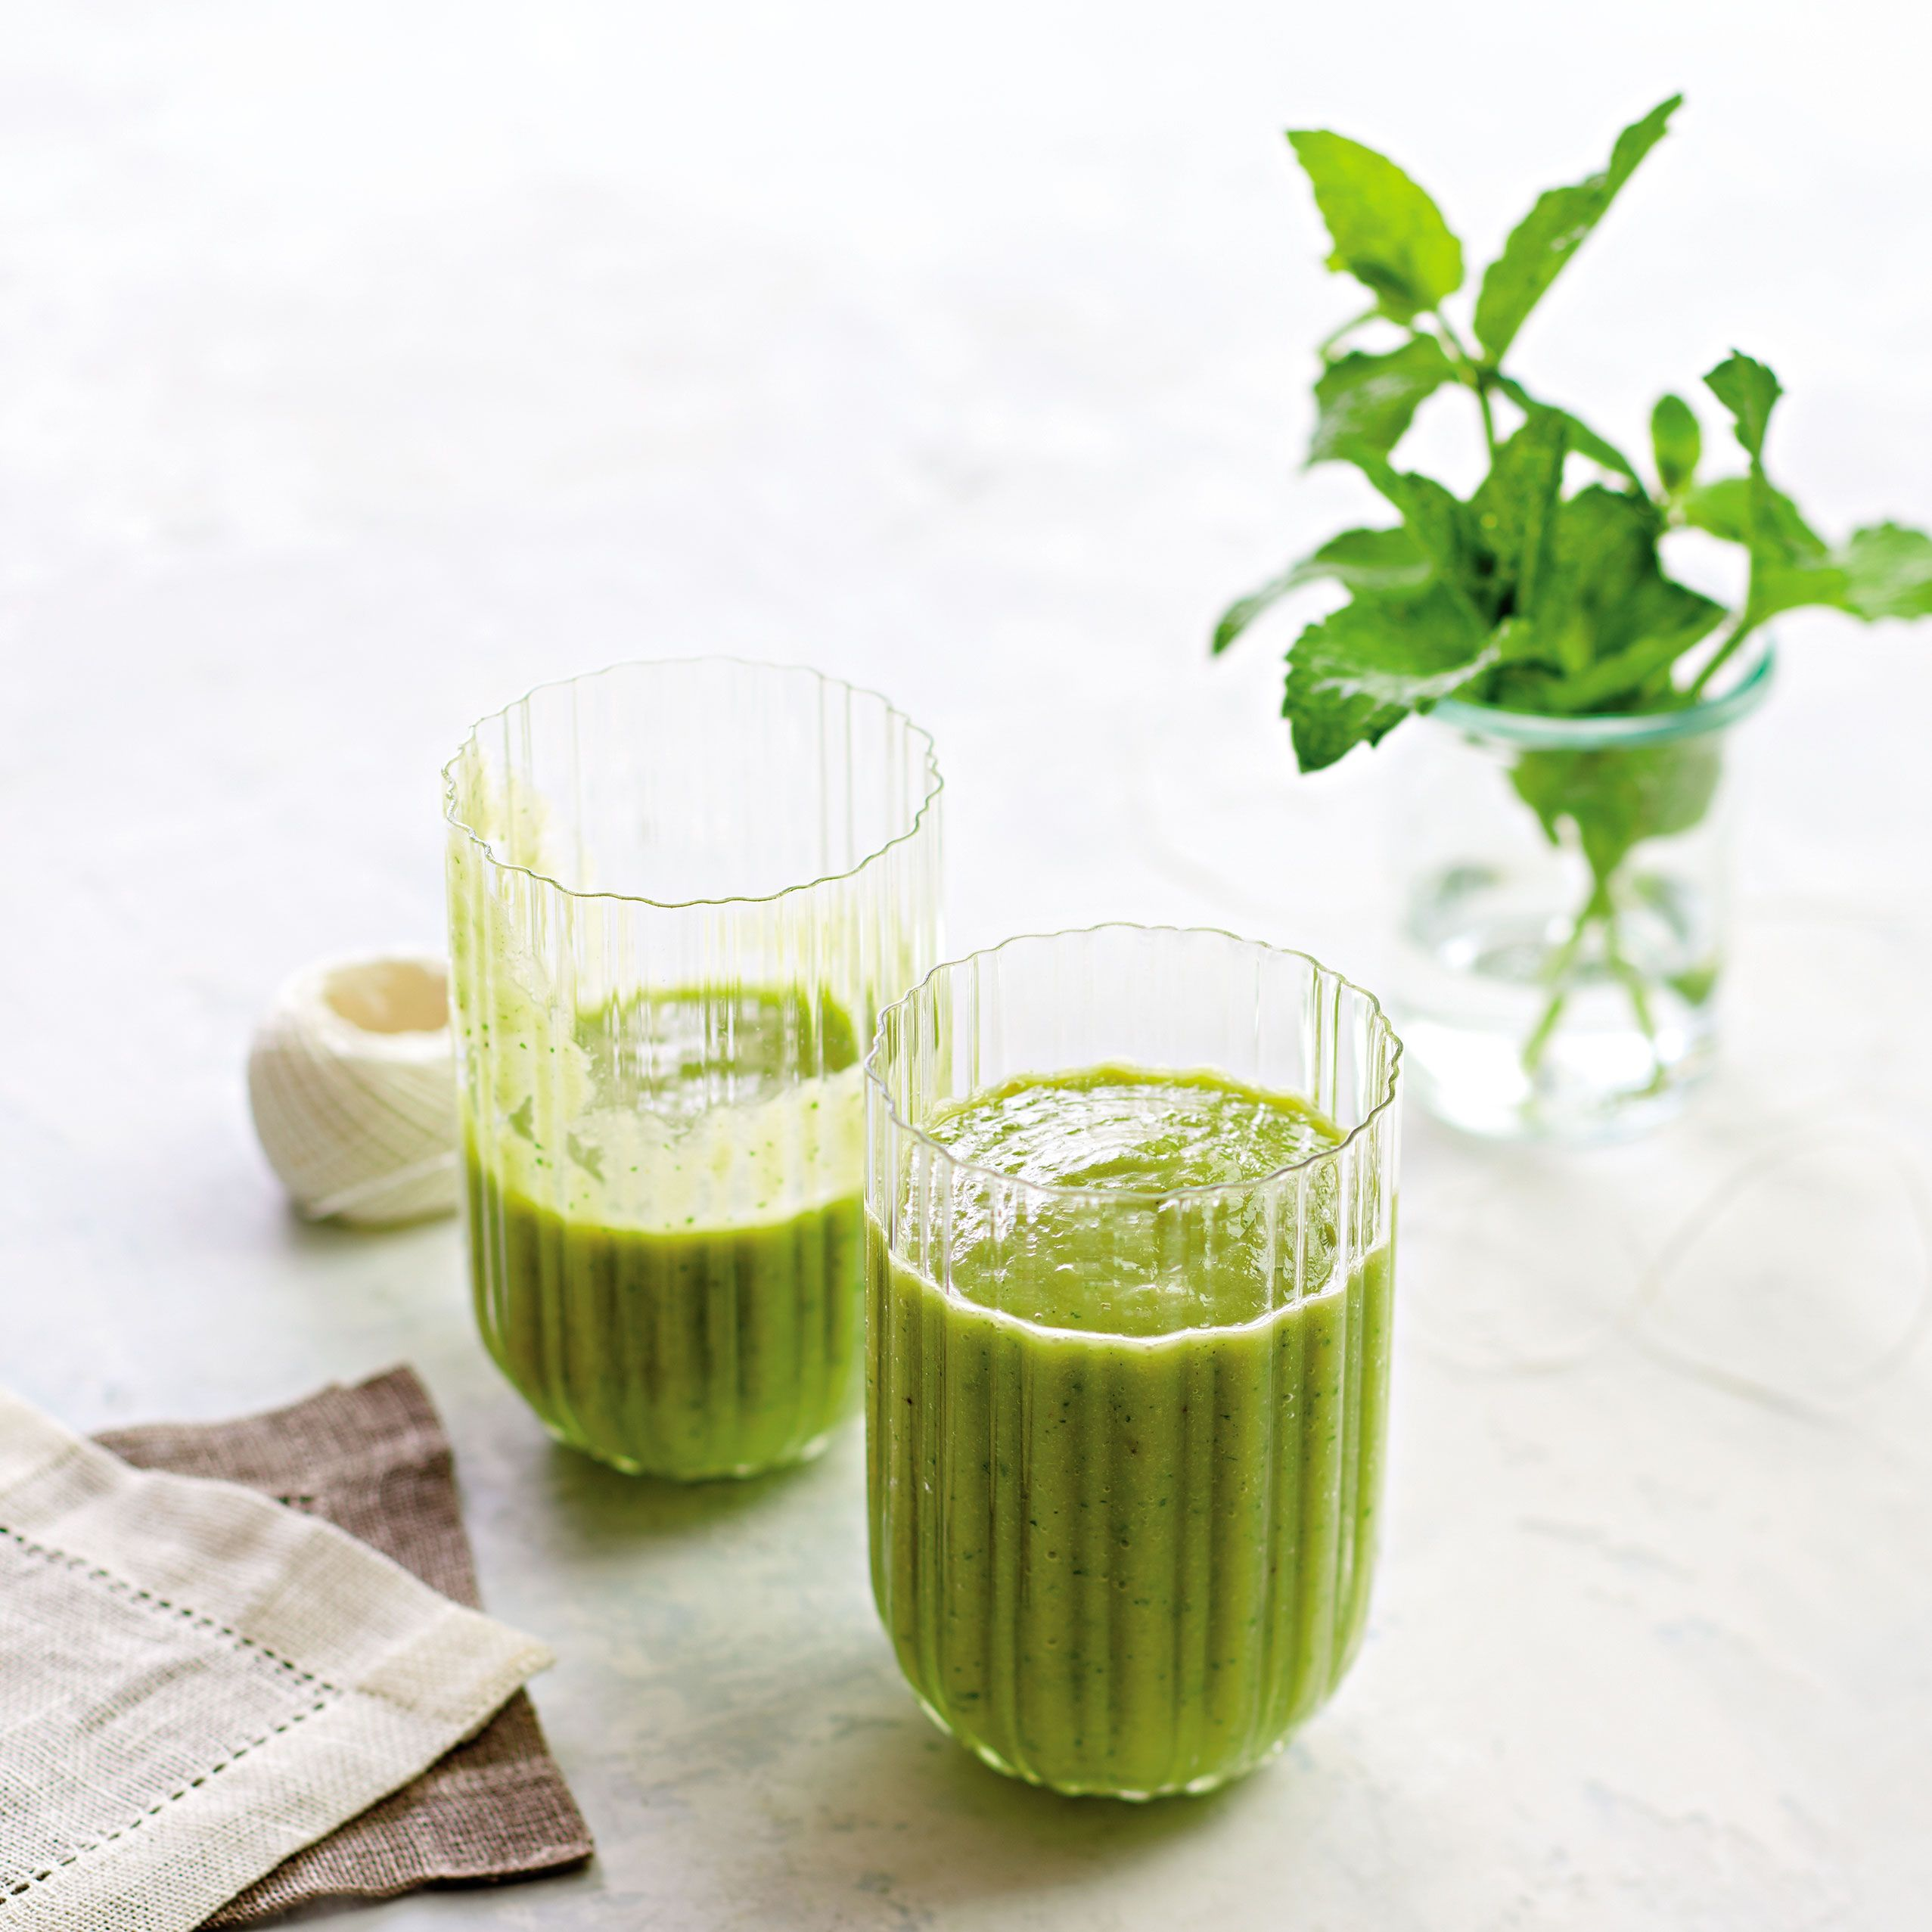 "<p><strong data-redactor-tag=""strong"">Ingredients<br></strong>1 avocado<br>1 large frozen banana<br>1 cup probiotic coconut water<br>½ cup frozen pineapple chunks<br>¼ cup chopped parsley<br>6 mint leaves<br>1 teaspoon grated fresh ginger </p><p><strong data-redactor-tag=""strong"">Directions: </strong>Blend all ingredients together until smooth. Makes one 12-ounce serving. </p><p><i data-redactor-tag=""i"">Reprinted with permission from </i><a href=""https://www.rodalestore.com/wh-bbo-smoothies-and-soups/B001406.html?dwvar_B001406_color=N01&categoryid=rodale-wellness&gaact=productclick"" data-tracking-id=""recirc-text-link"" target=""_blank"">The Women's Health Big Book of Smoothies & Soups</a><em data-redactor-tag=""em""> by Lisa DeFazio, R.D.</em></p>"